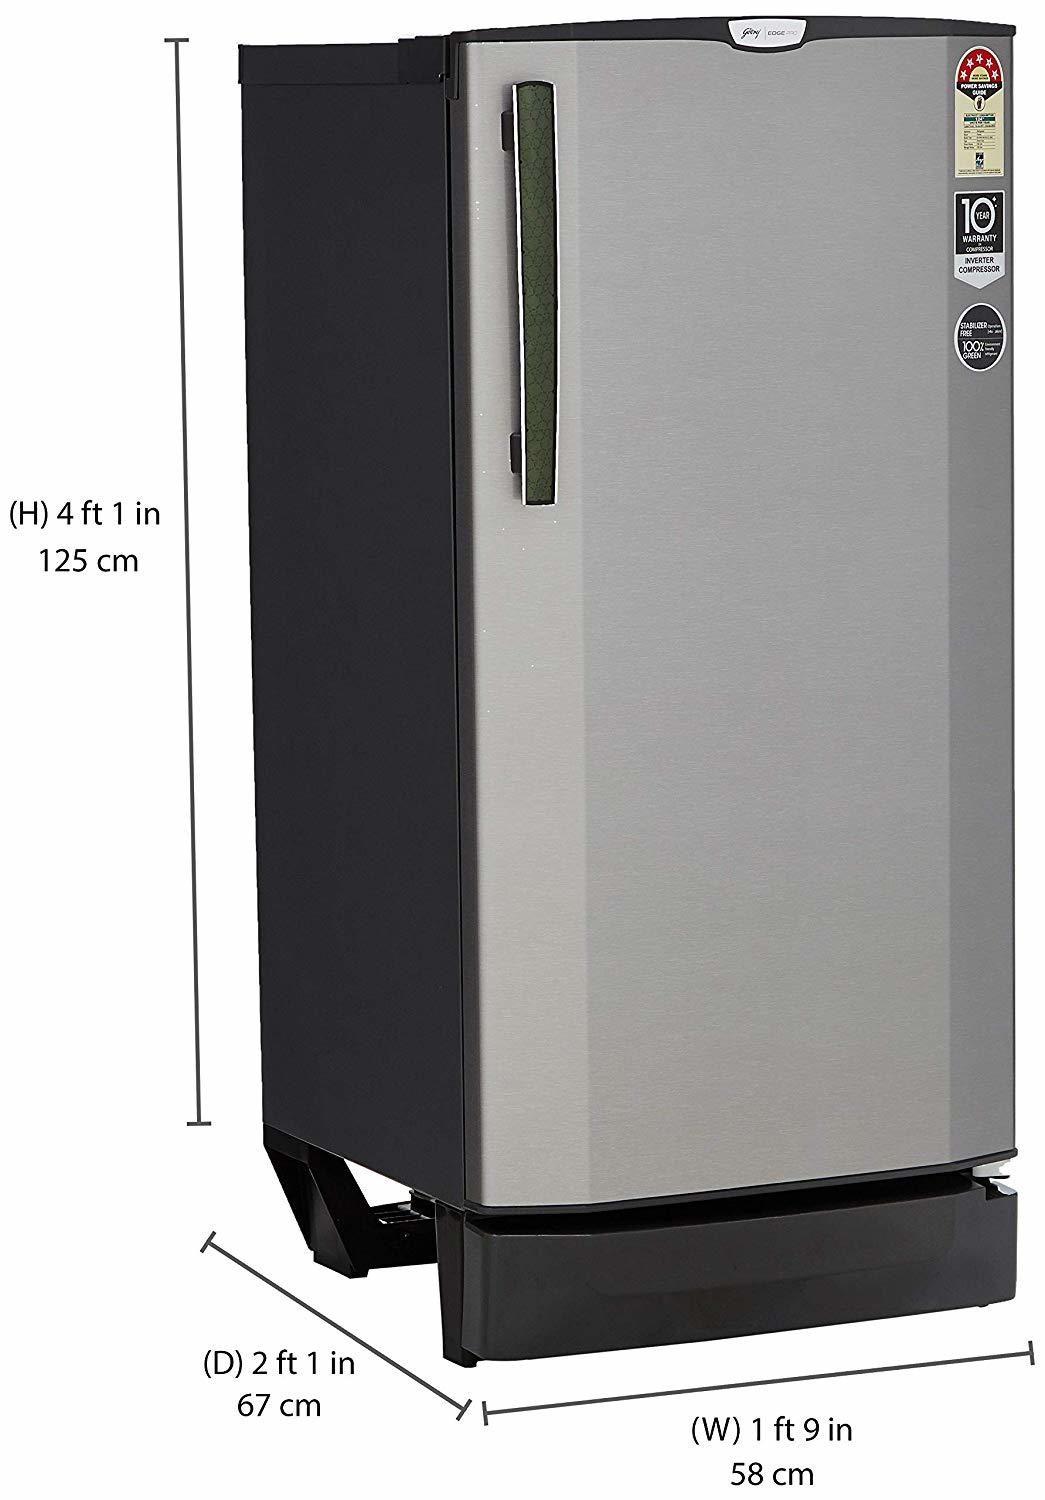 Godrej 190 L 5 Star ( 2019 ) Inverter Direct-Cool Single-Door Refrigerator (RD EPRO 205 TAI 5.2 SNY STL, Shiny Steel)